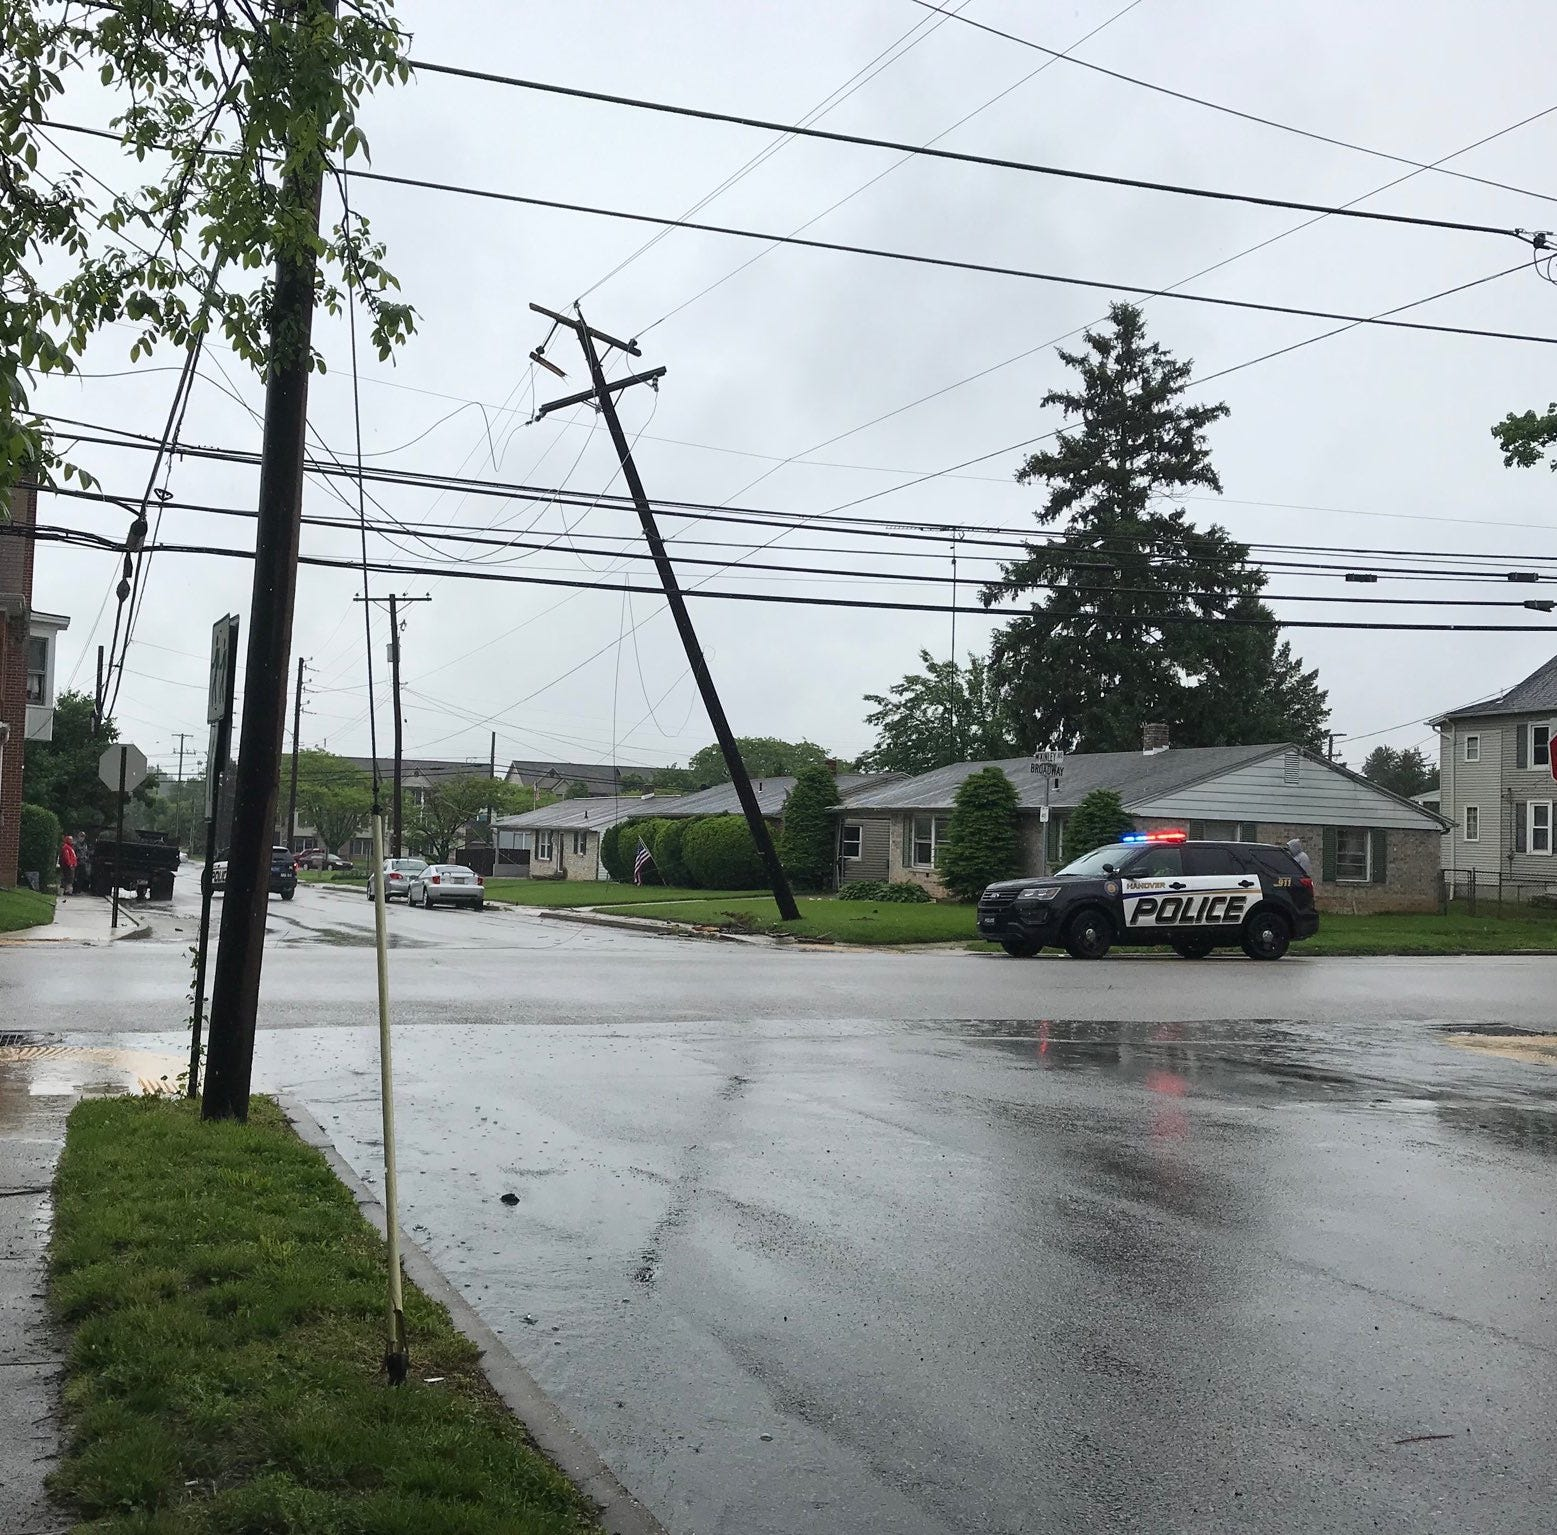 Crash into a utility pole causes power outages, Broadway to be closed up to 8 hours